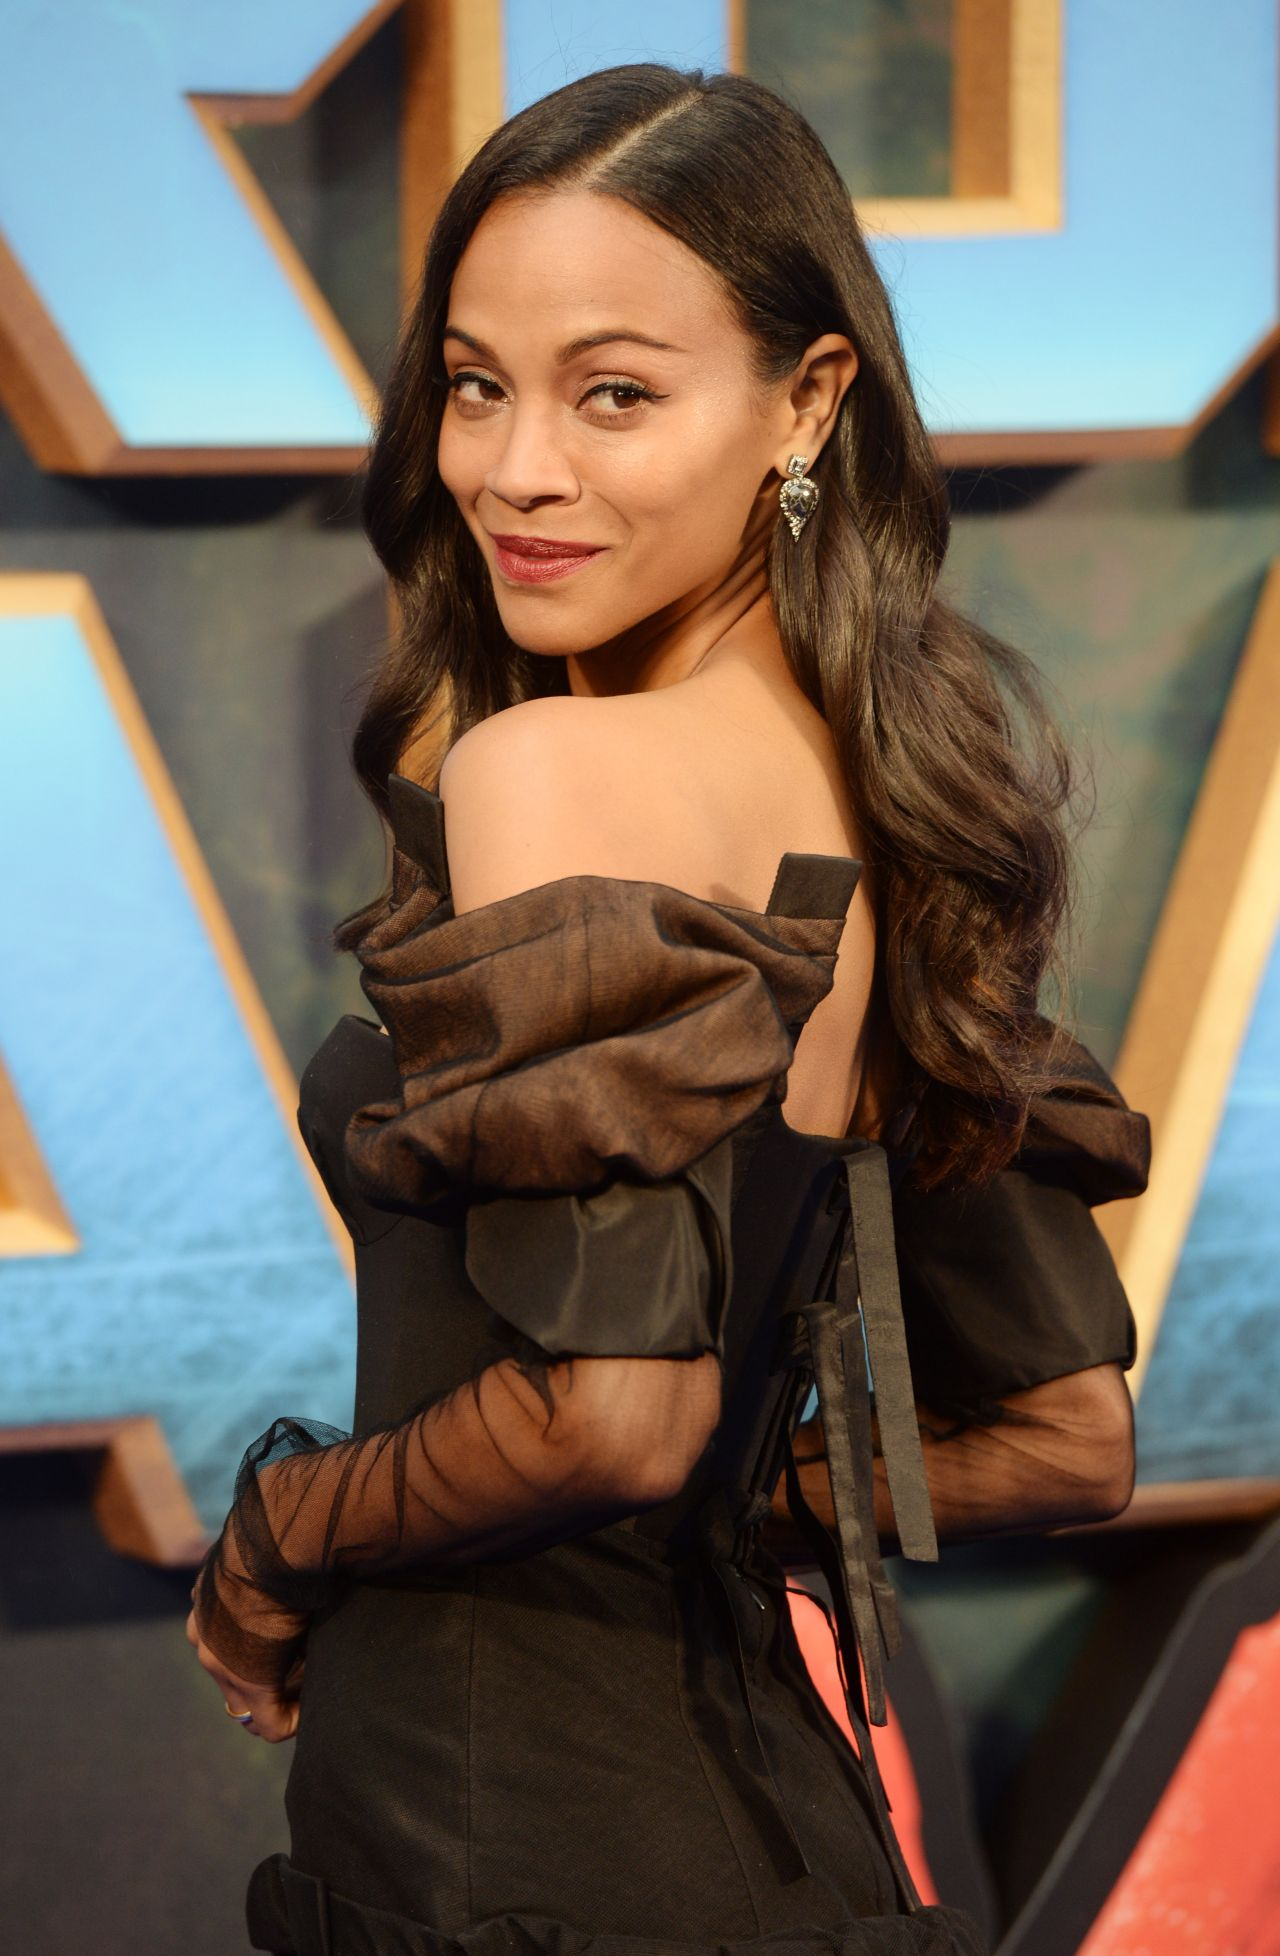 Image result for guardians of the galaxy 2 movie premiere zoe saldana